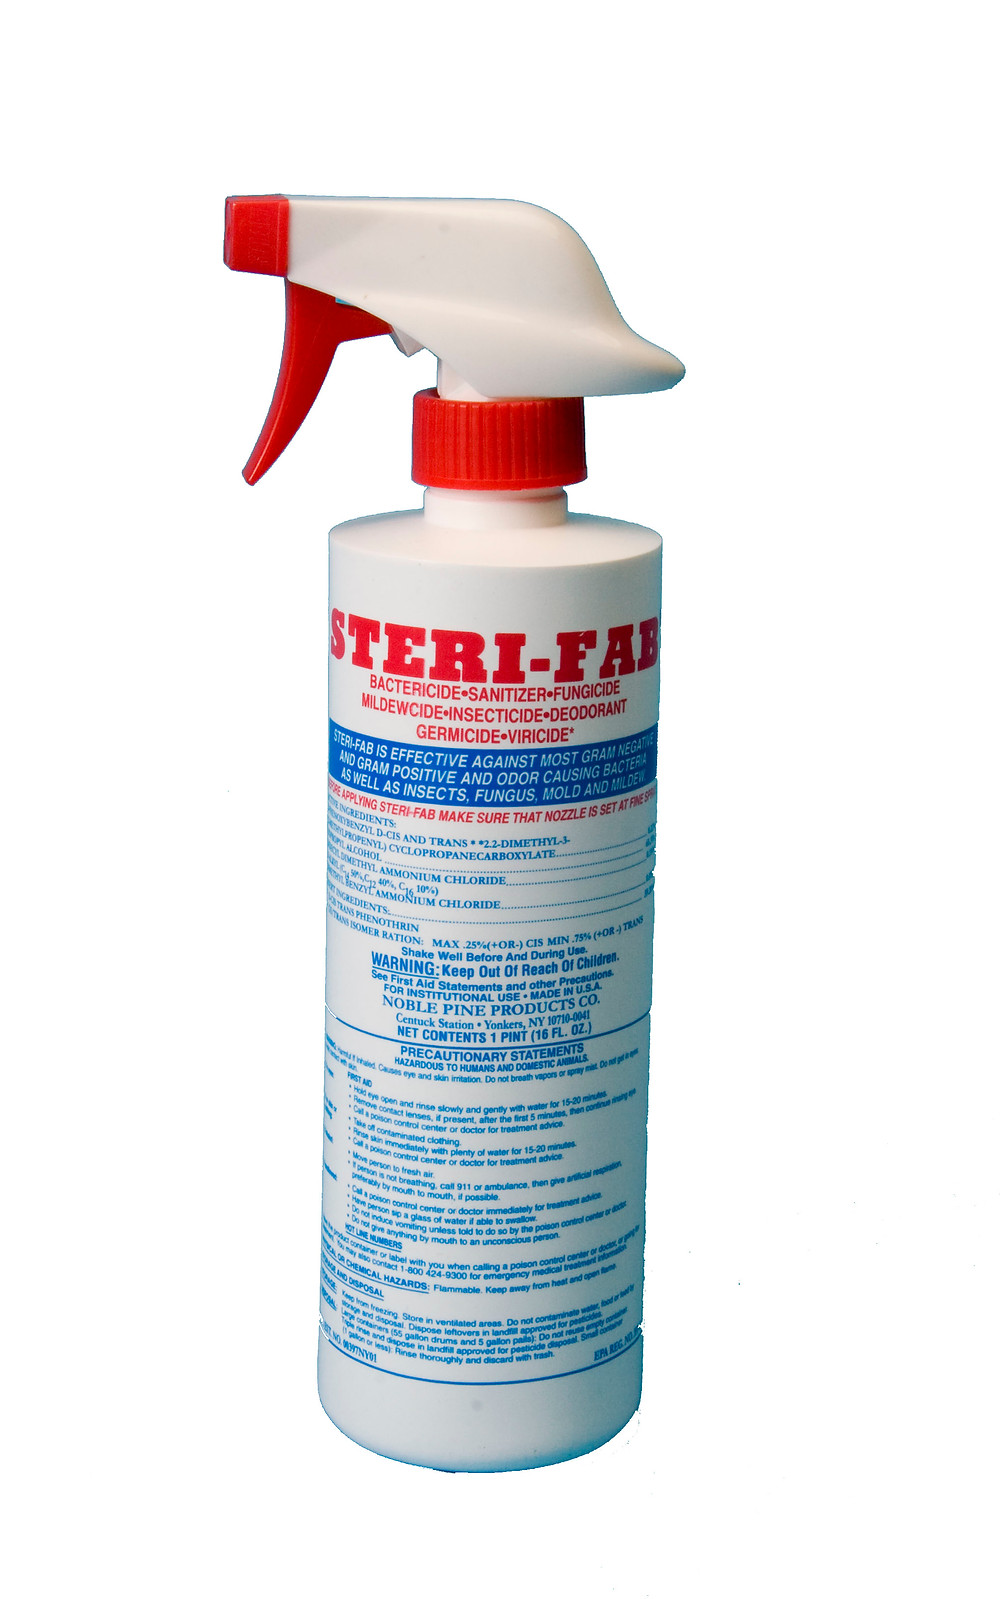 Sterifab spray bottle for home use